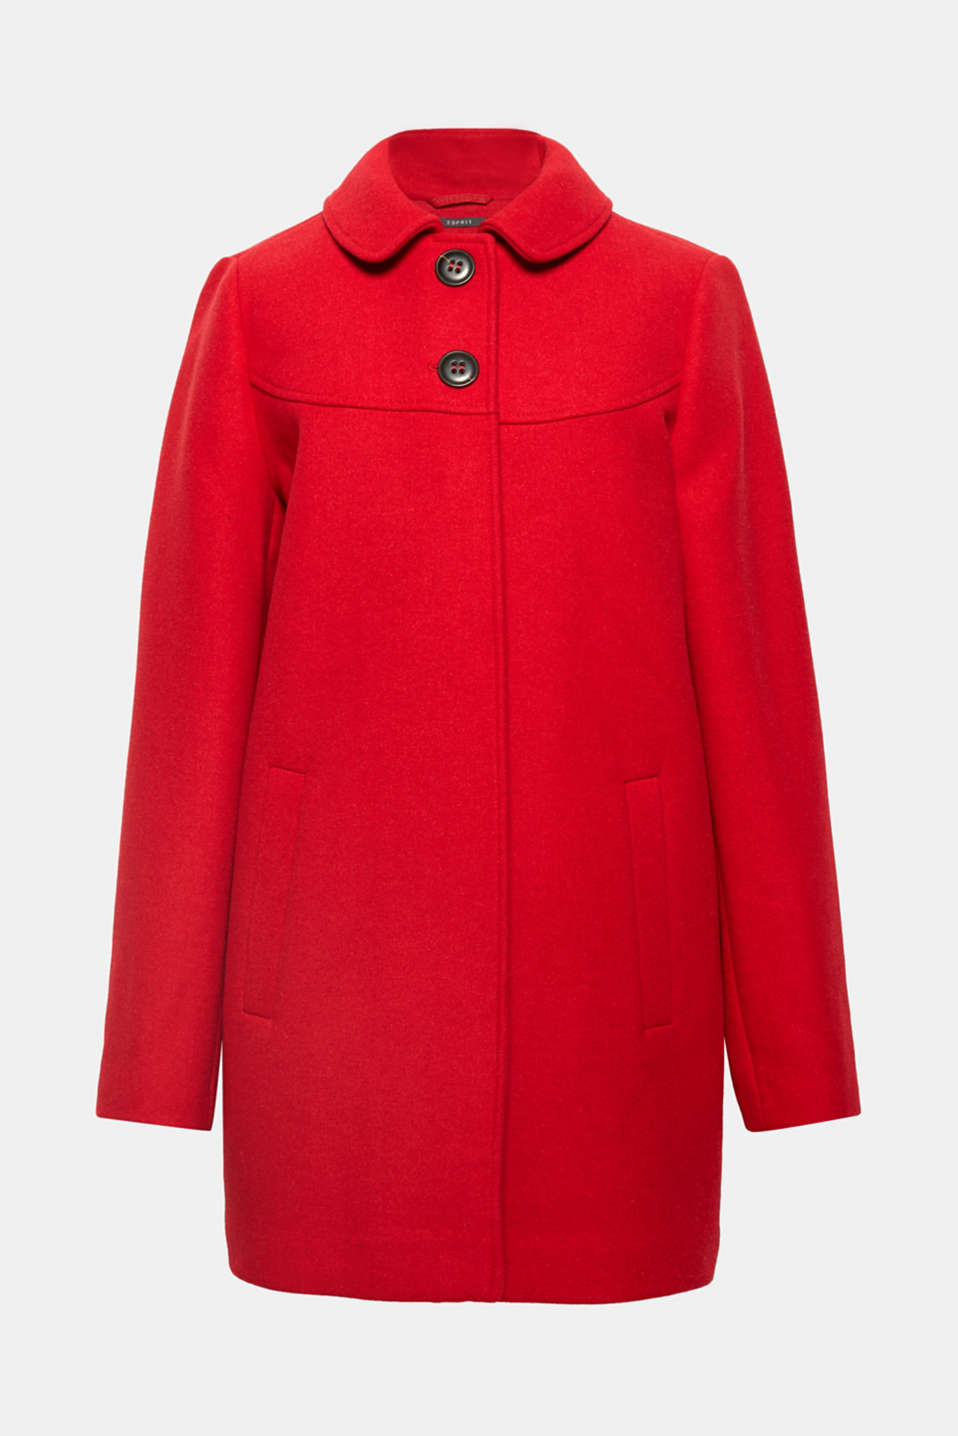 Its colour, striking buttons and slightly flared, A-line cut put this classic, blended wool coat in a class of its own.